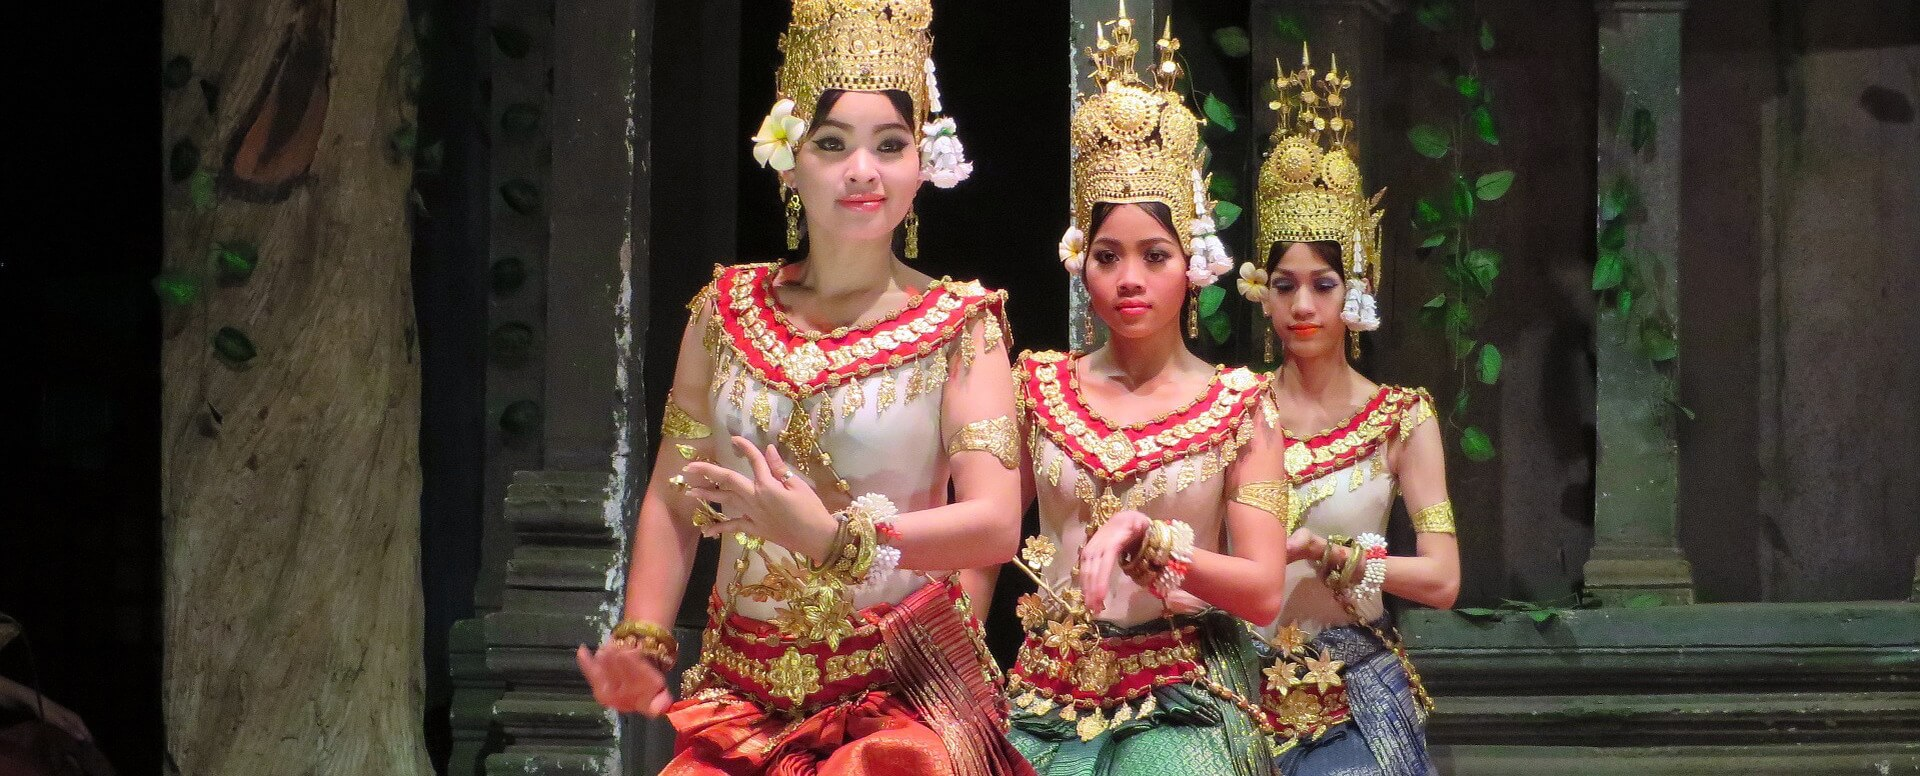 Spectacle de danse - Cambodge